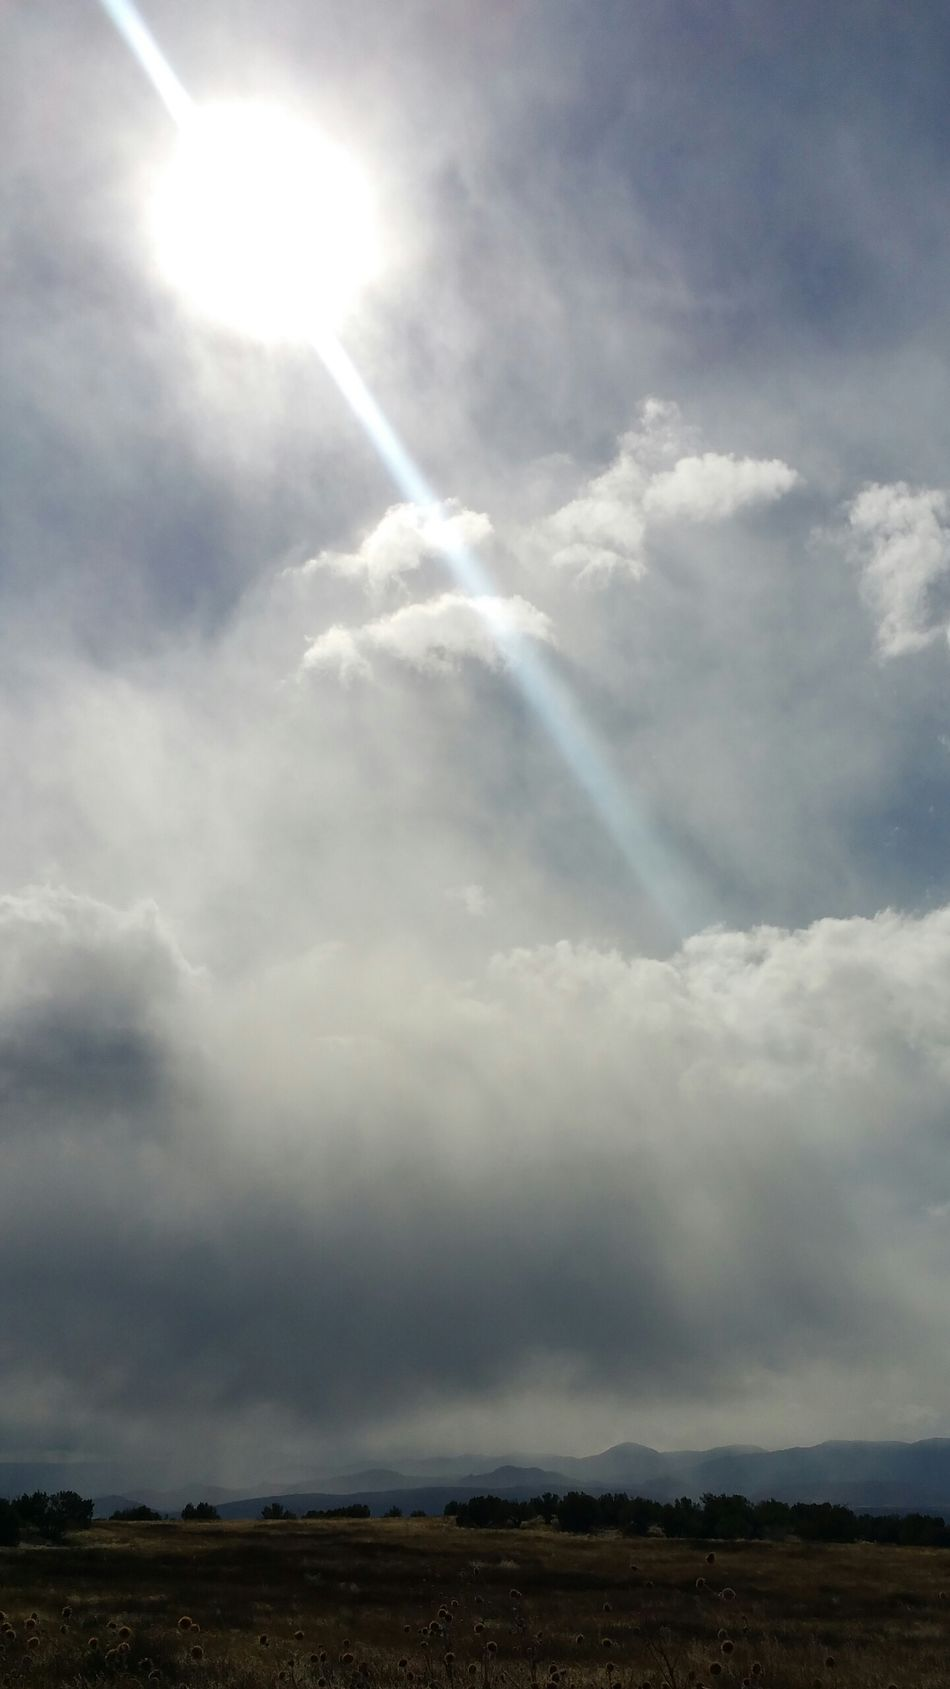 Storm Clouds Gathering Clouds Over The Mountains Fall Brisk Storm Clouds Mountains Blue Sky Sun Rays Sun Trees